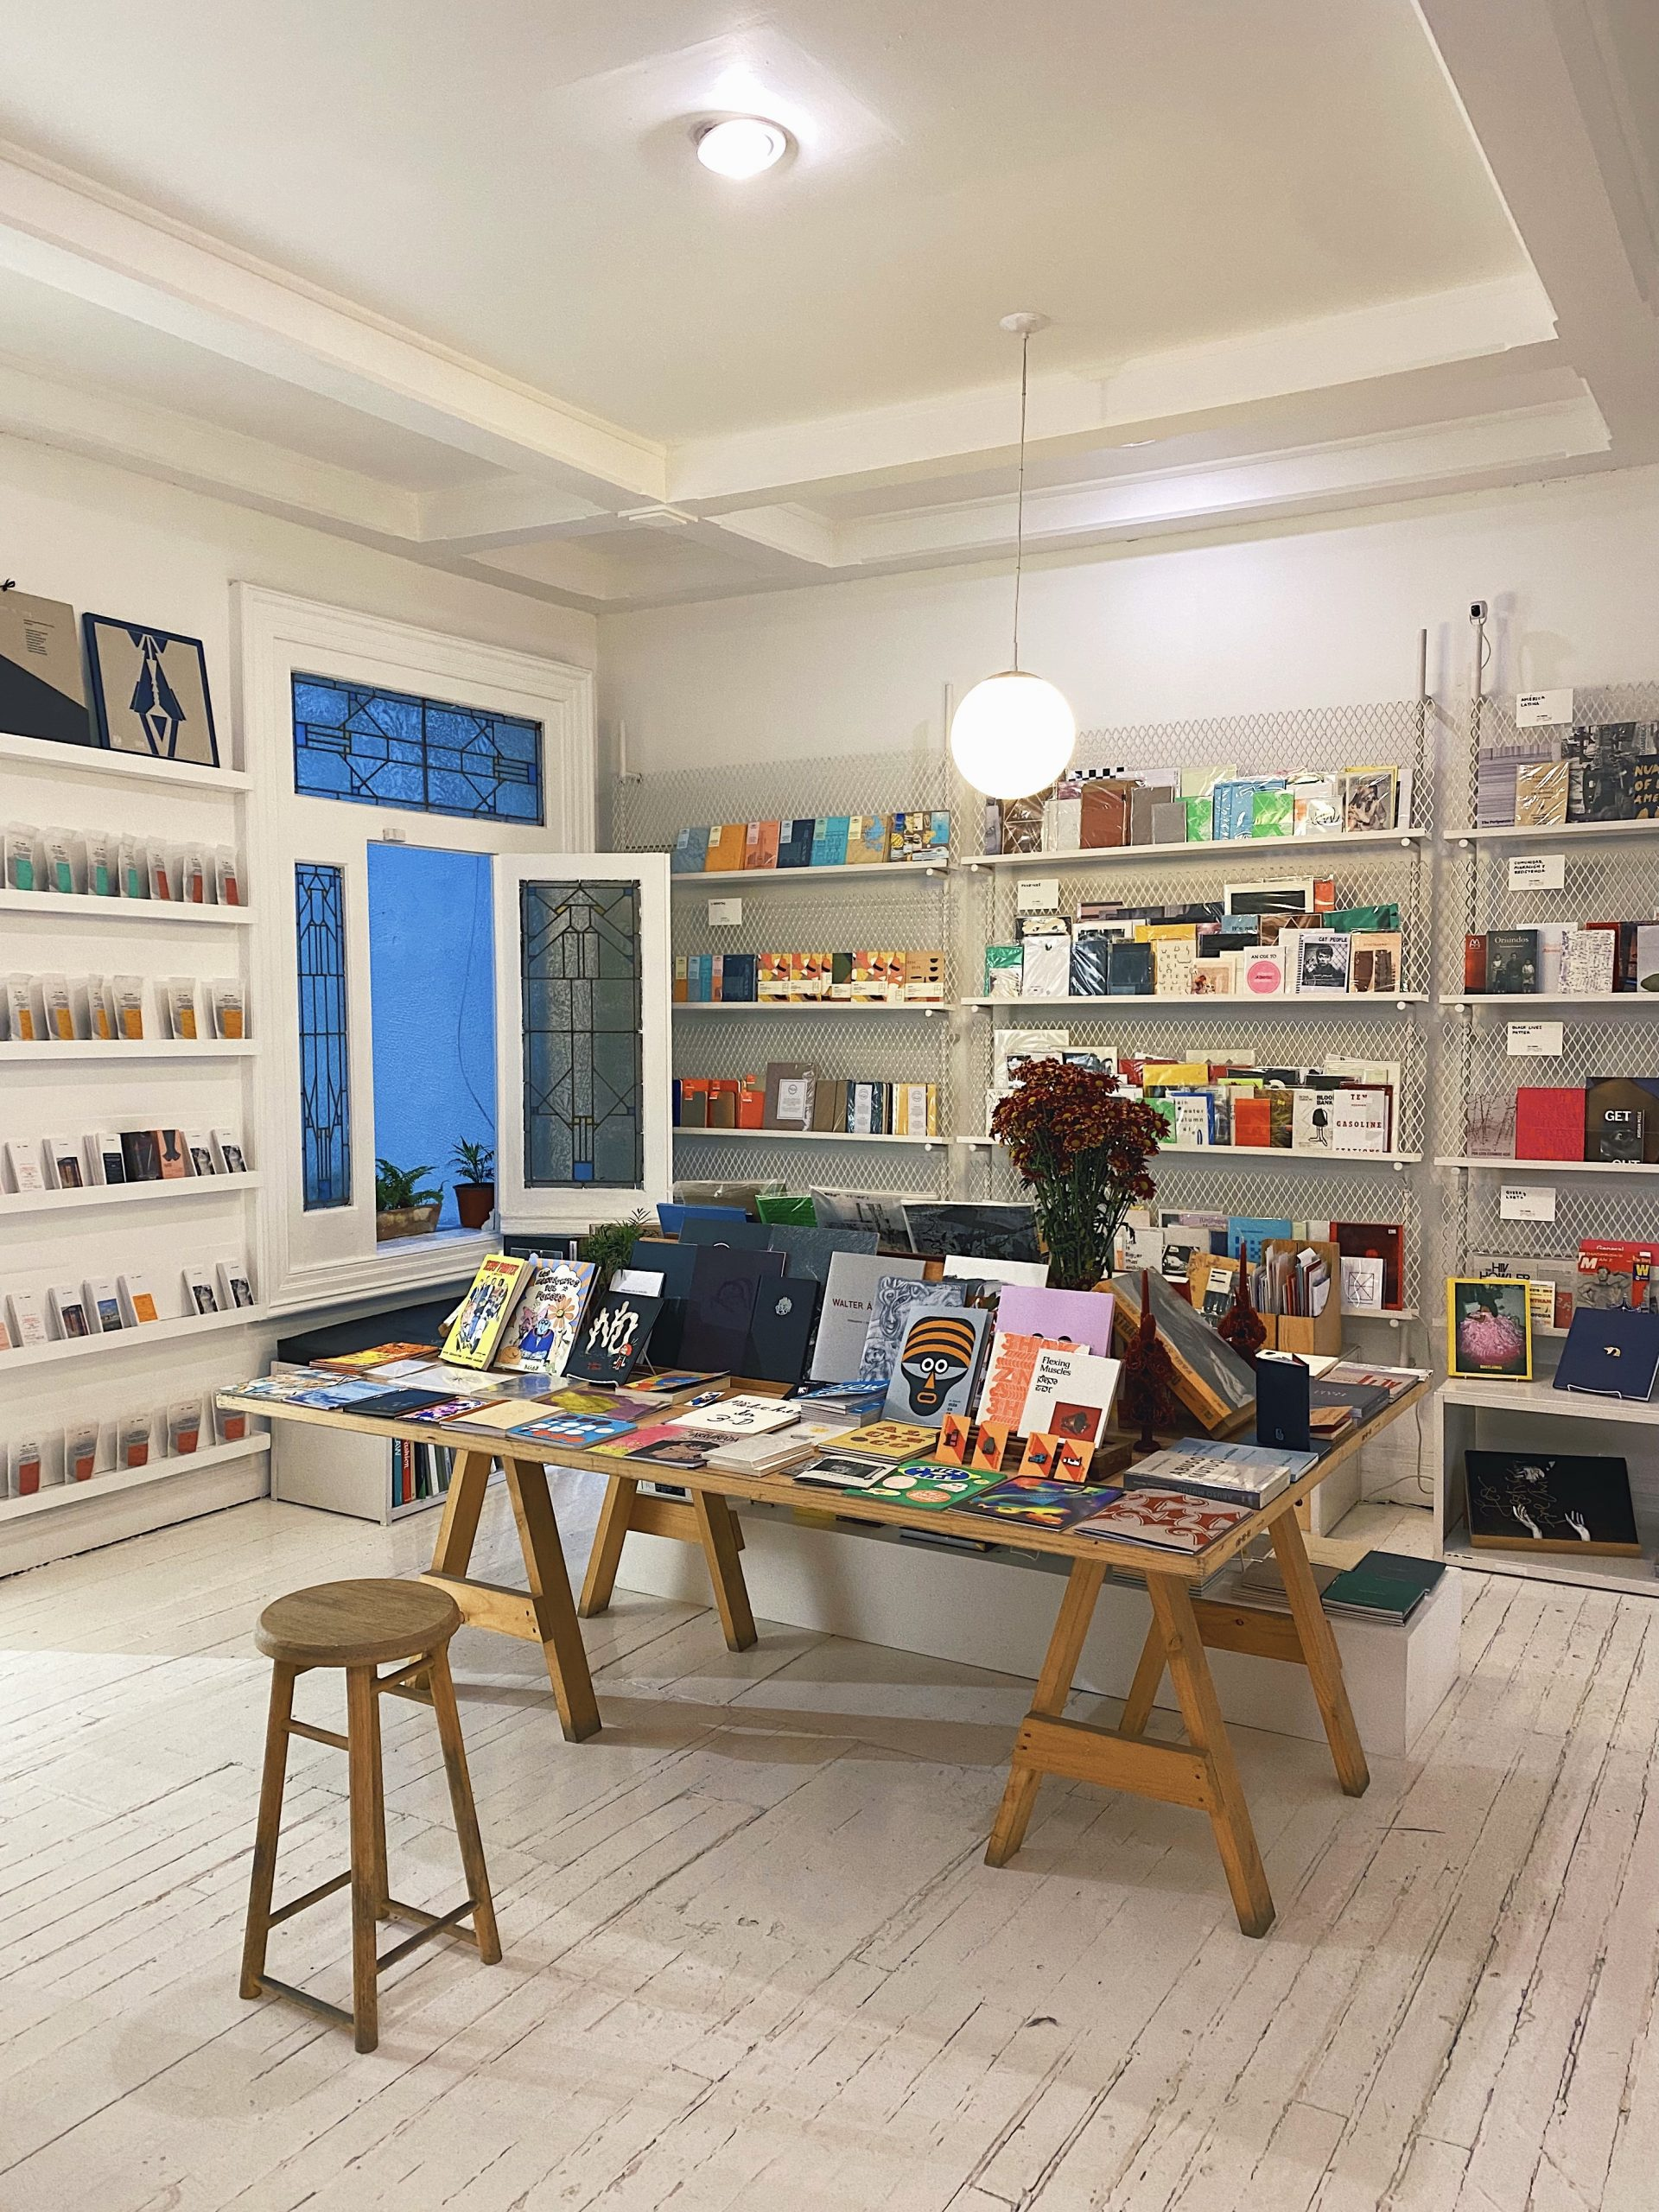 wu-haus-mexico-city-guide-store